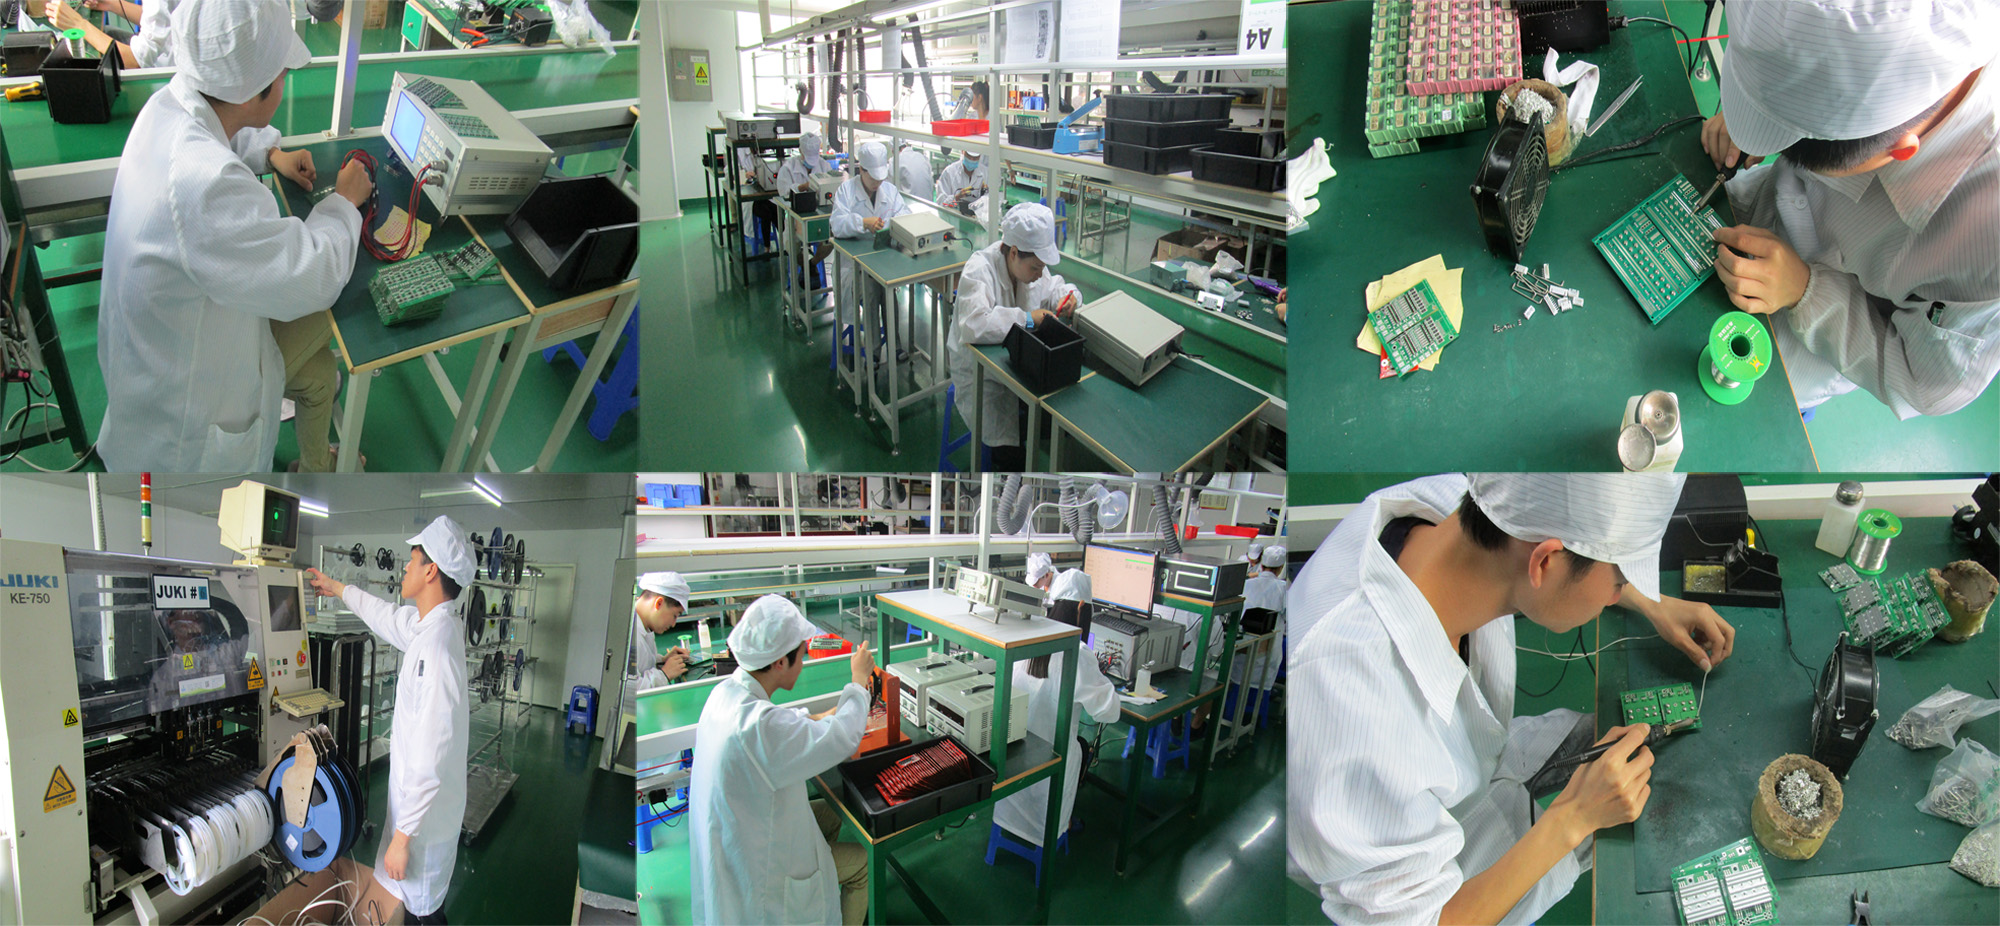 pcb/pcm/bms manufacturer of e-bike/unicycle/power tools/movable power/toy's battery pack.